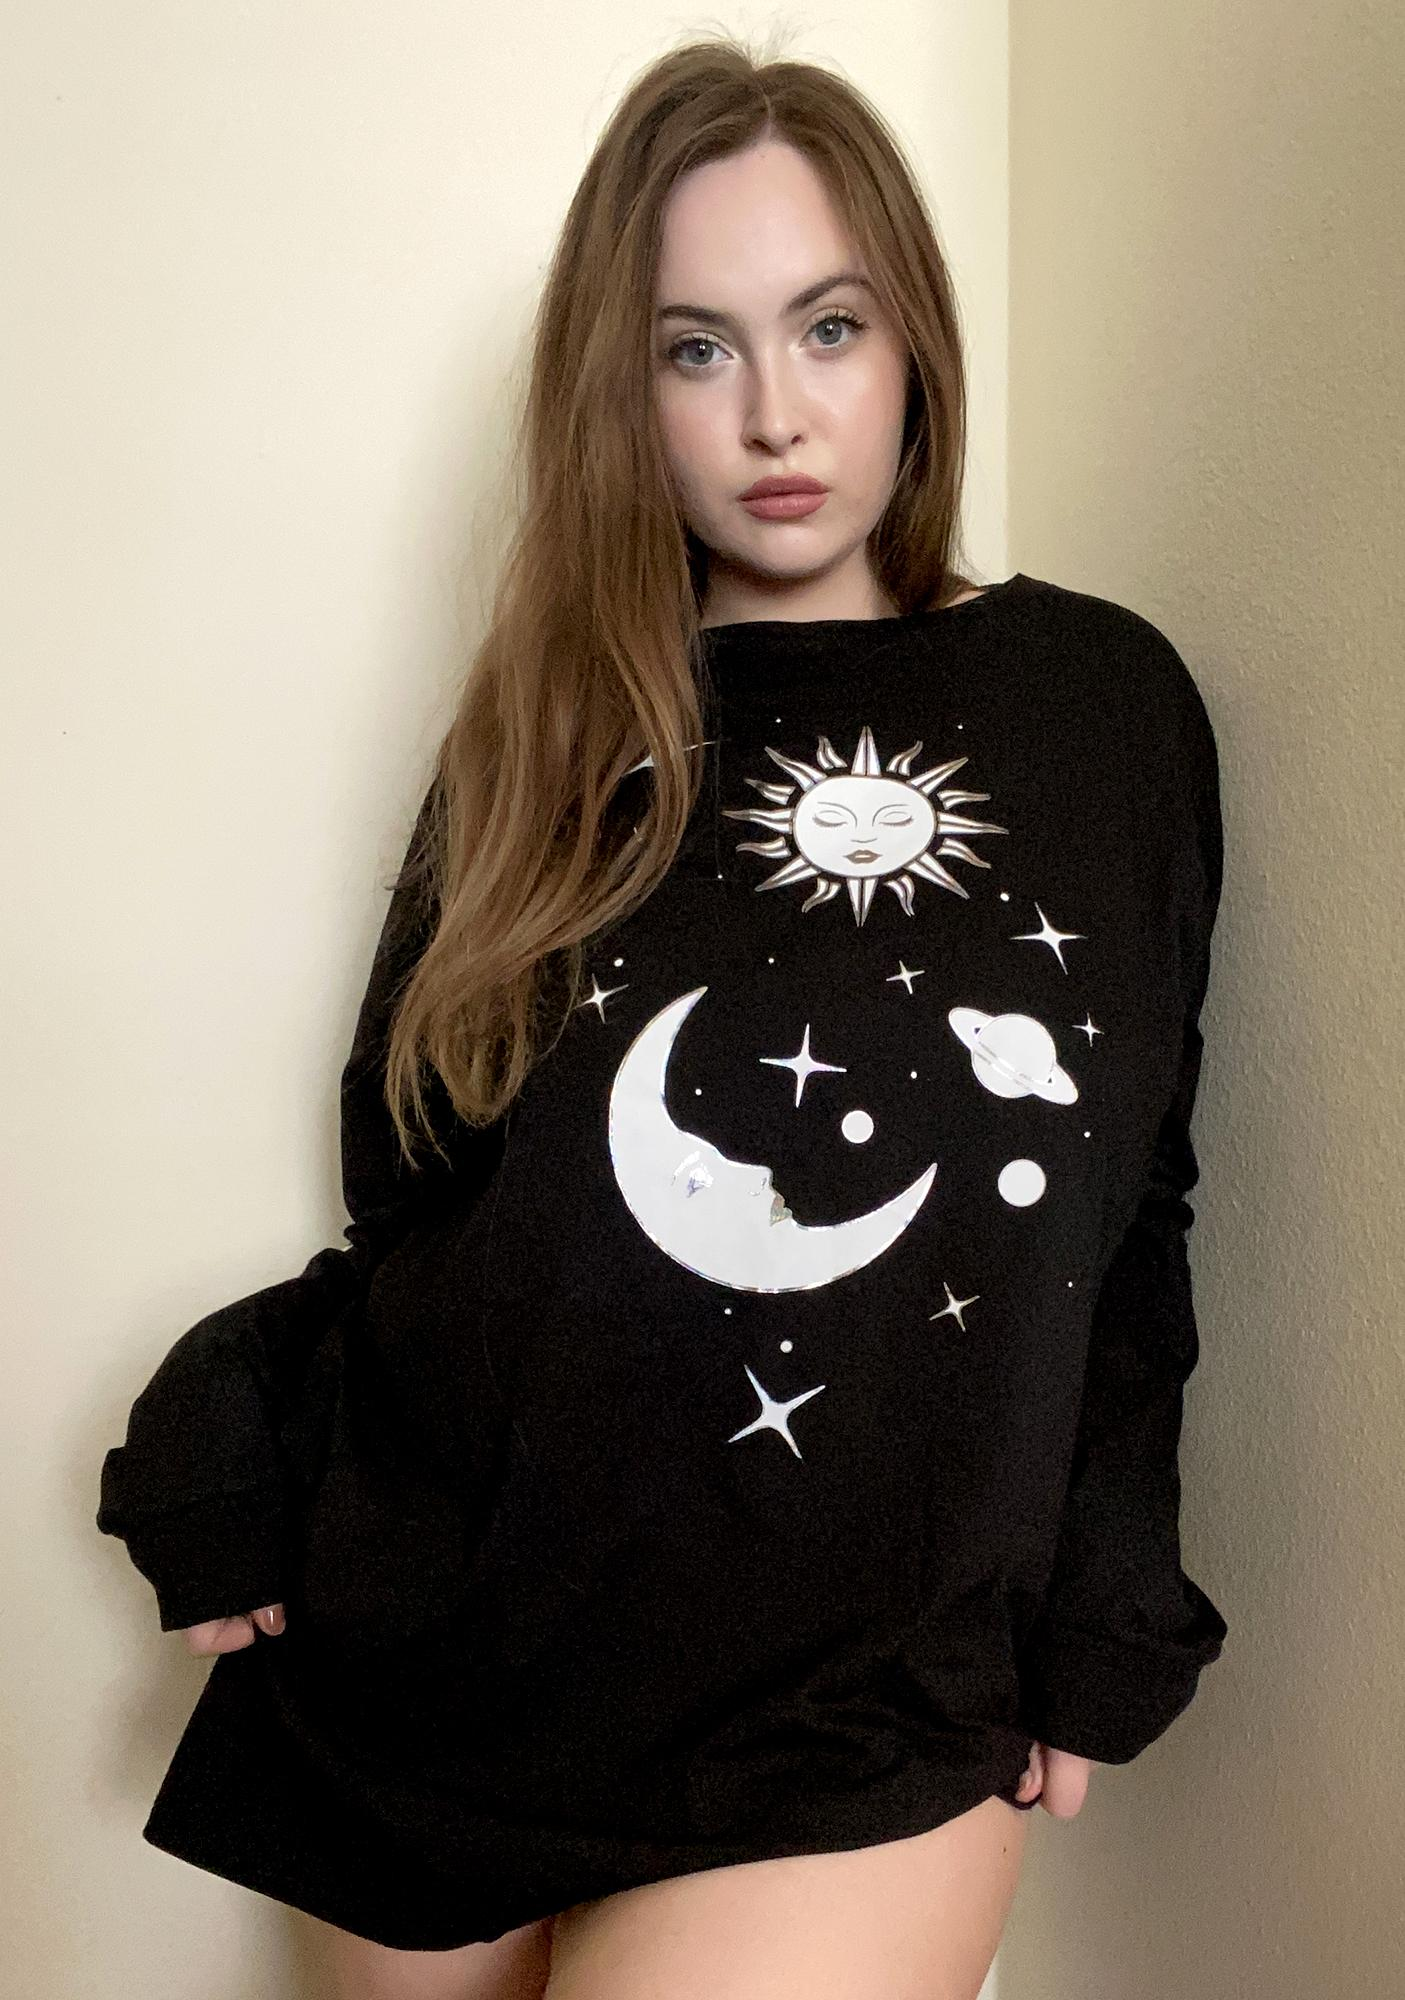 HOROSCOPEZ I'll Find A Balance Long Sleeve Tee